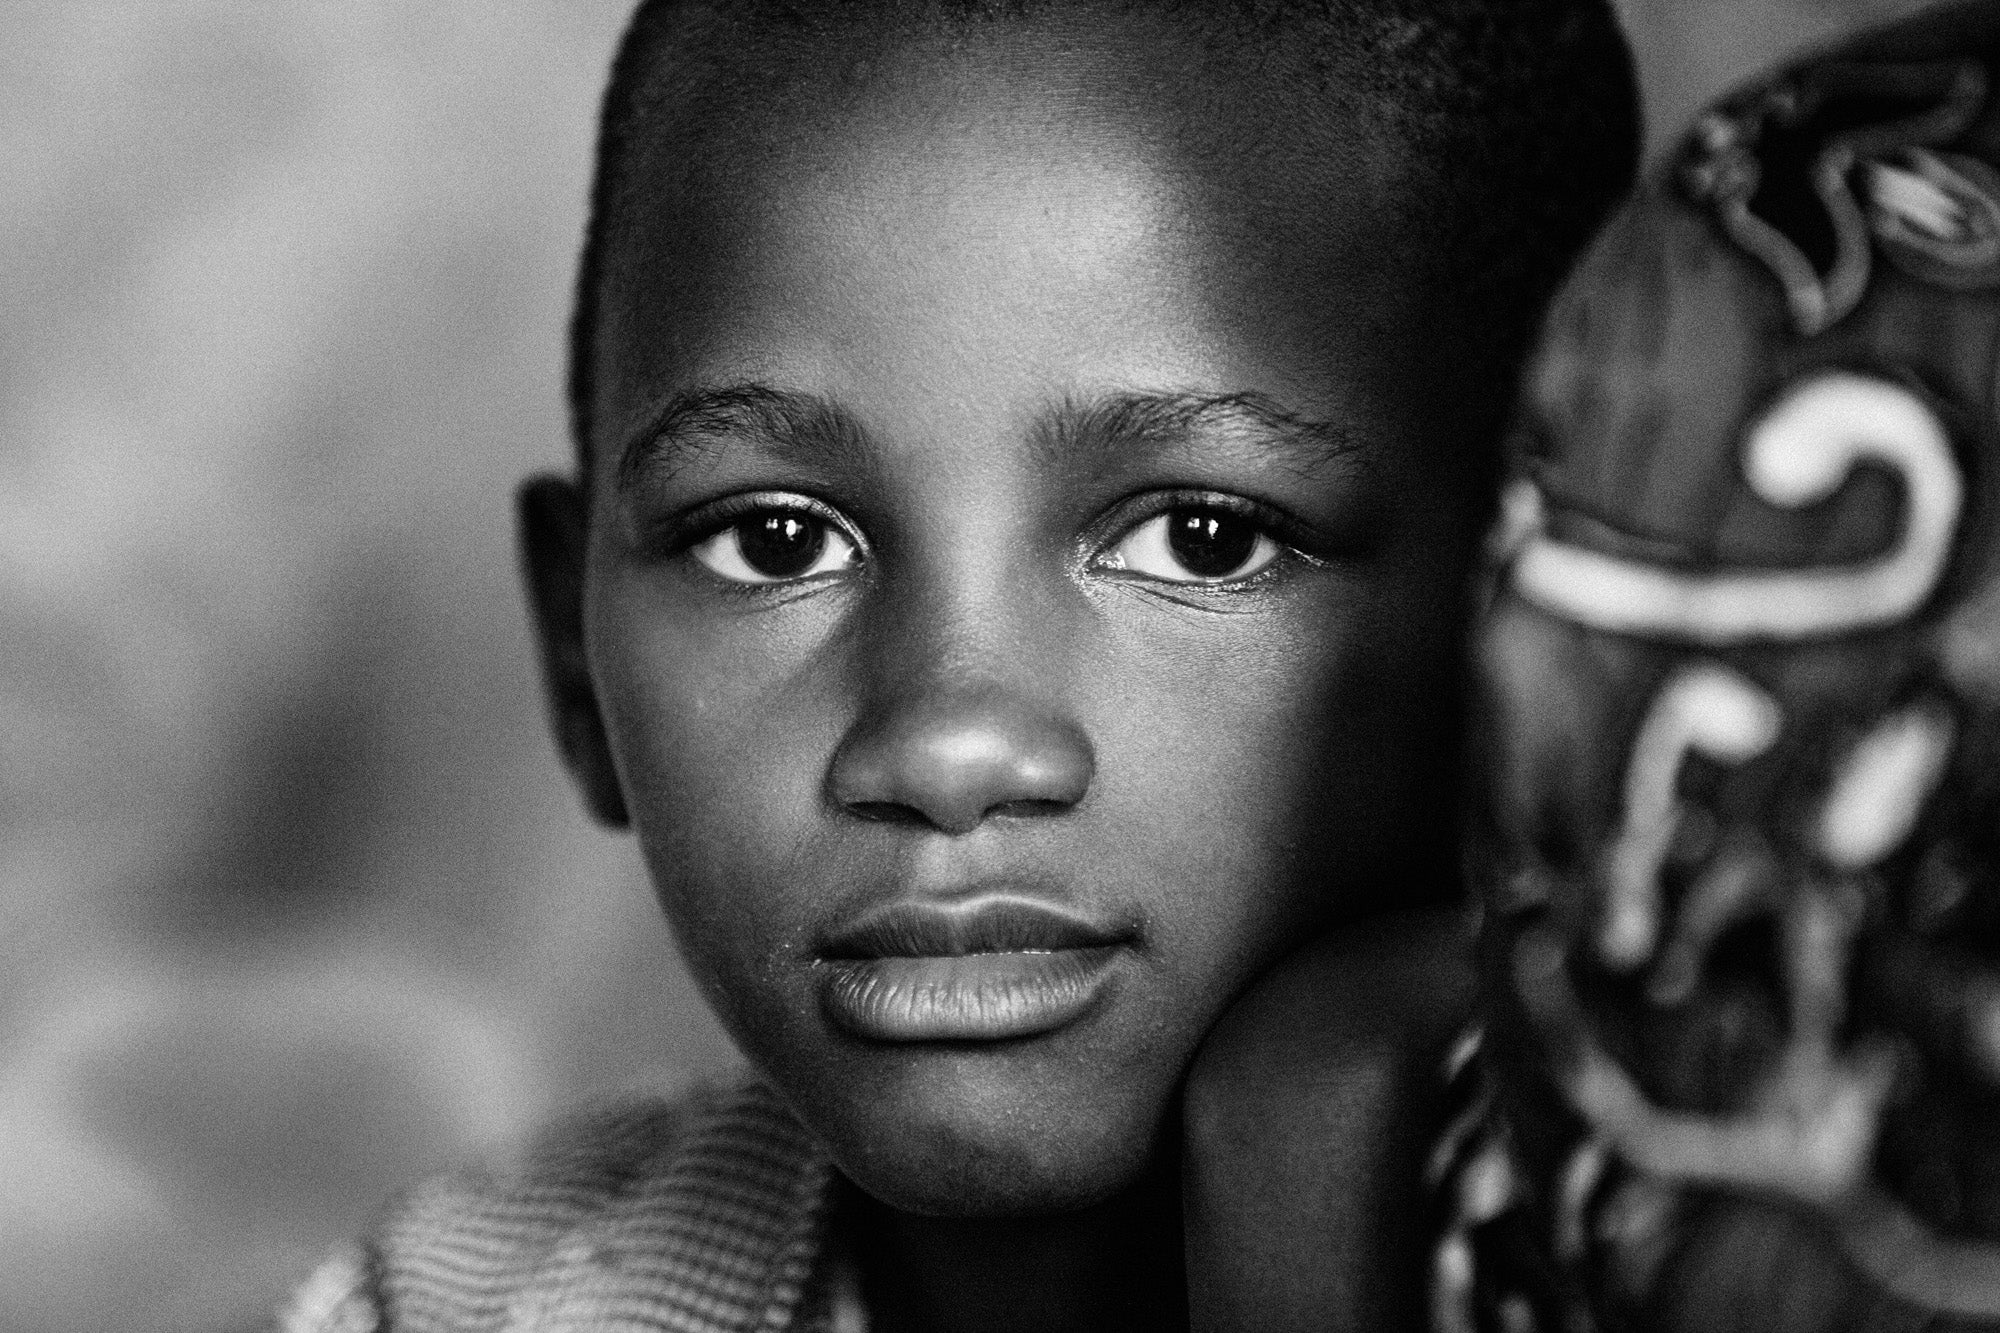 Rwandan Child - Humanity Unified International